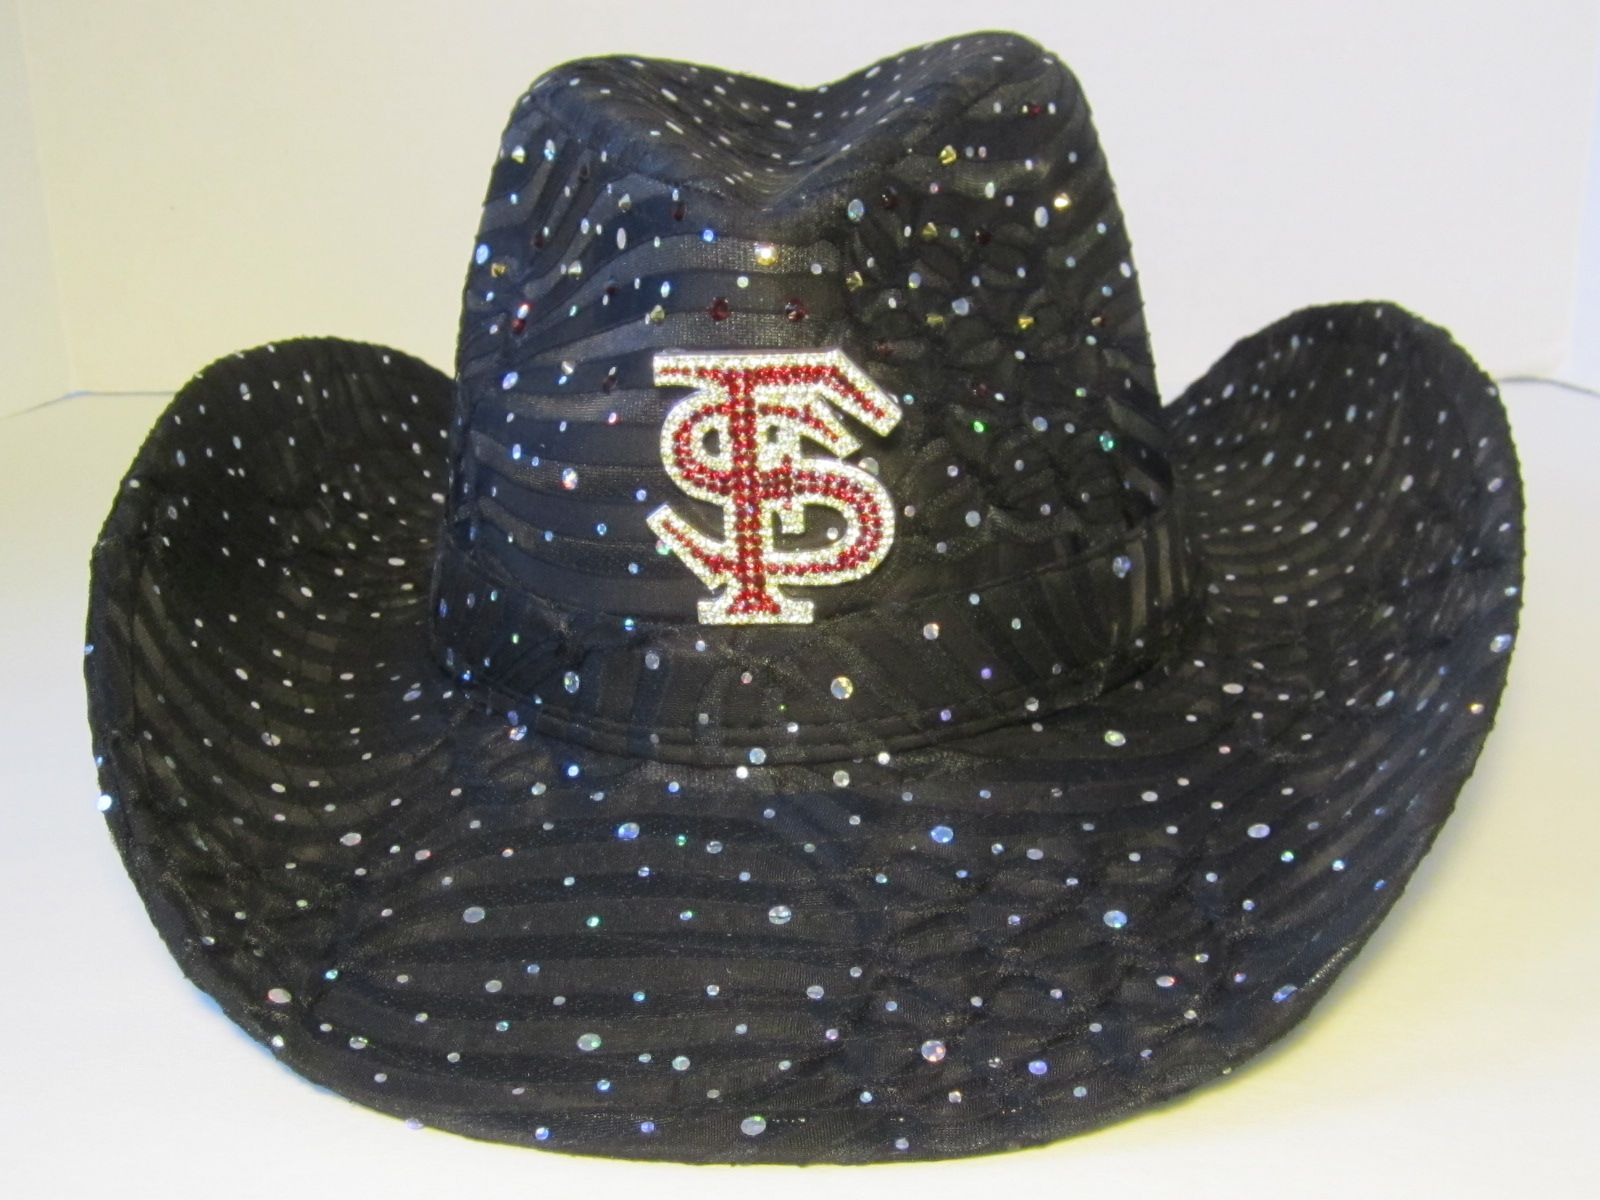 5b32a1121d6de FSU Cowgirl hat -  59.95 each Black fabric sequin Cowgirl hat with a  rhinestone FSU pin on the front and Swarovski dark red   metallic gold  crystals on the ...